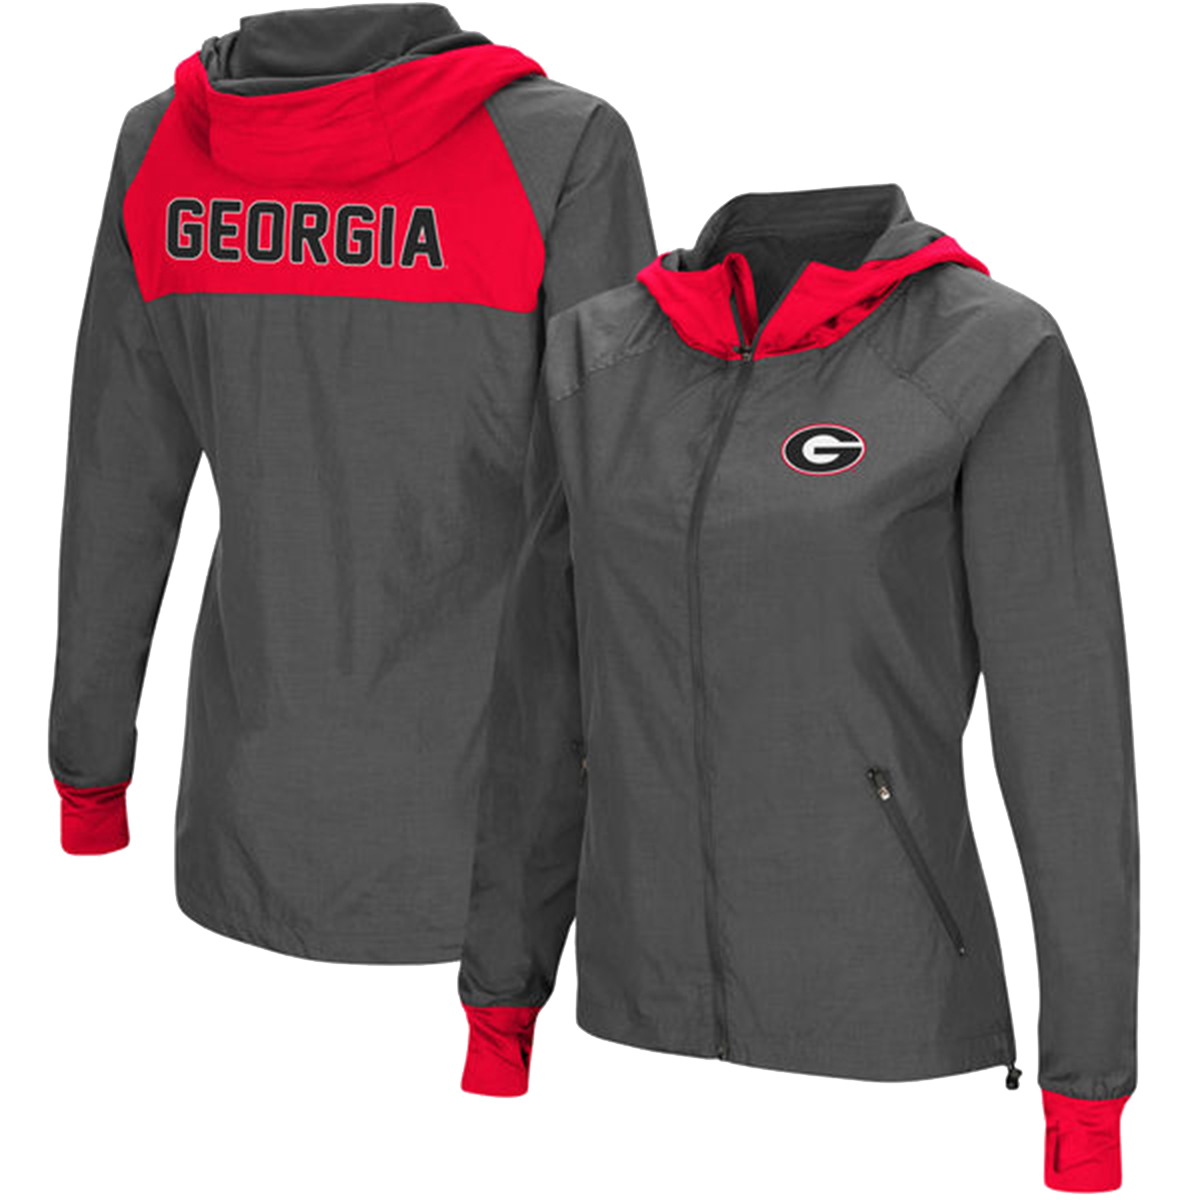 Colosseum Georgia Bulldogs Womens Backside Hooded Jacket by COUJ30617C GA